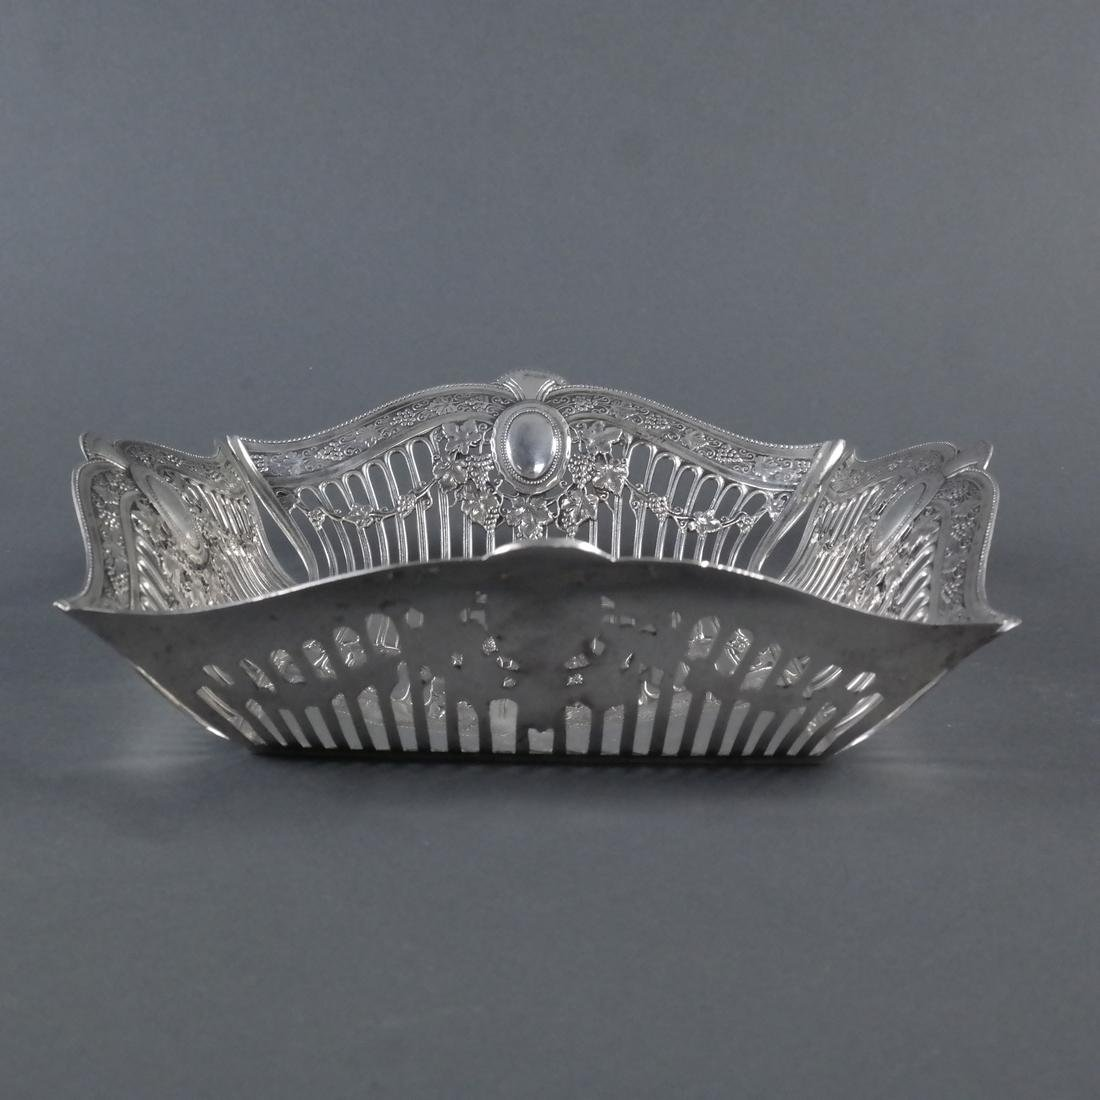 .900 Standard Silver Reticulated Basket - 3